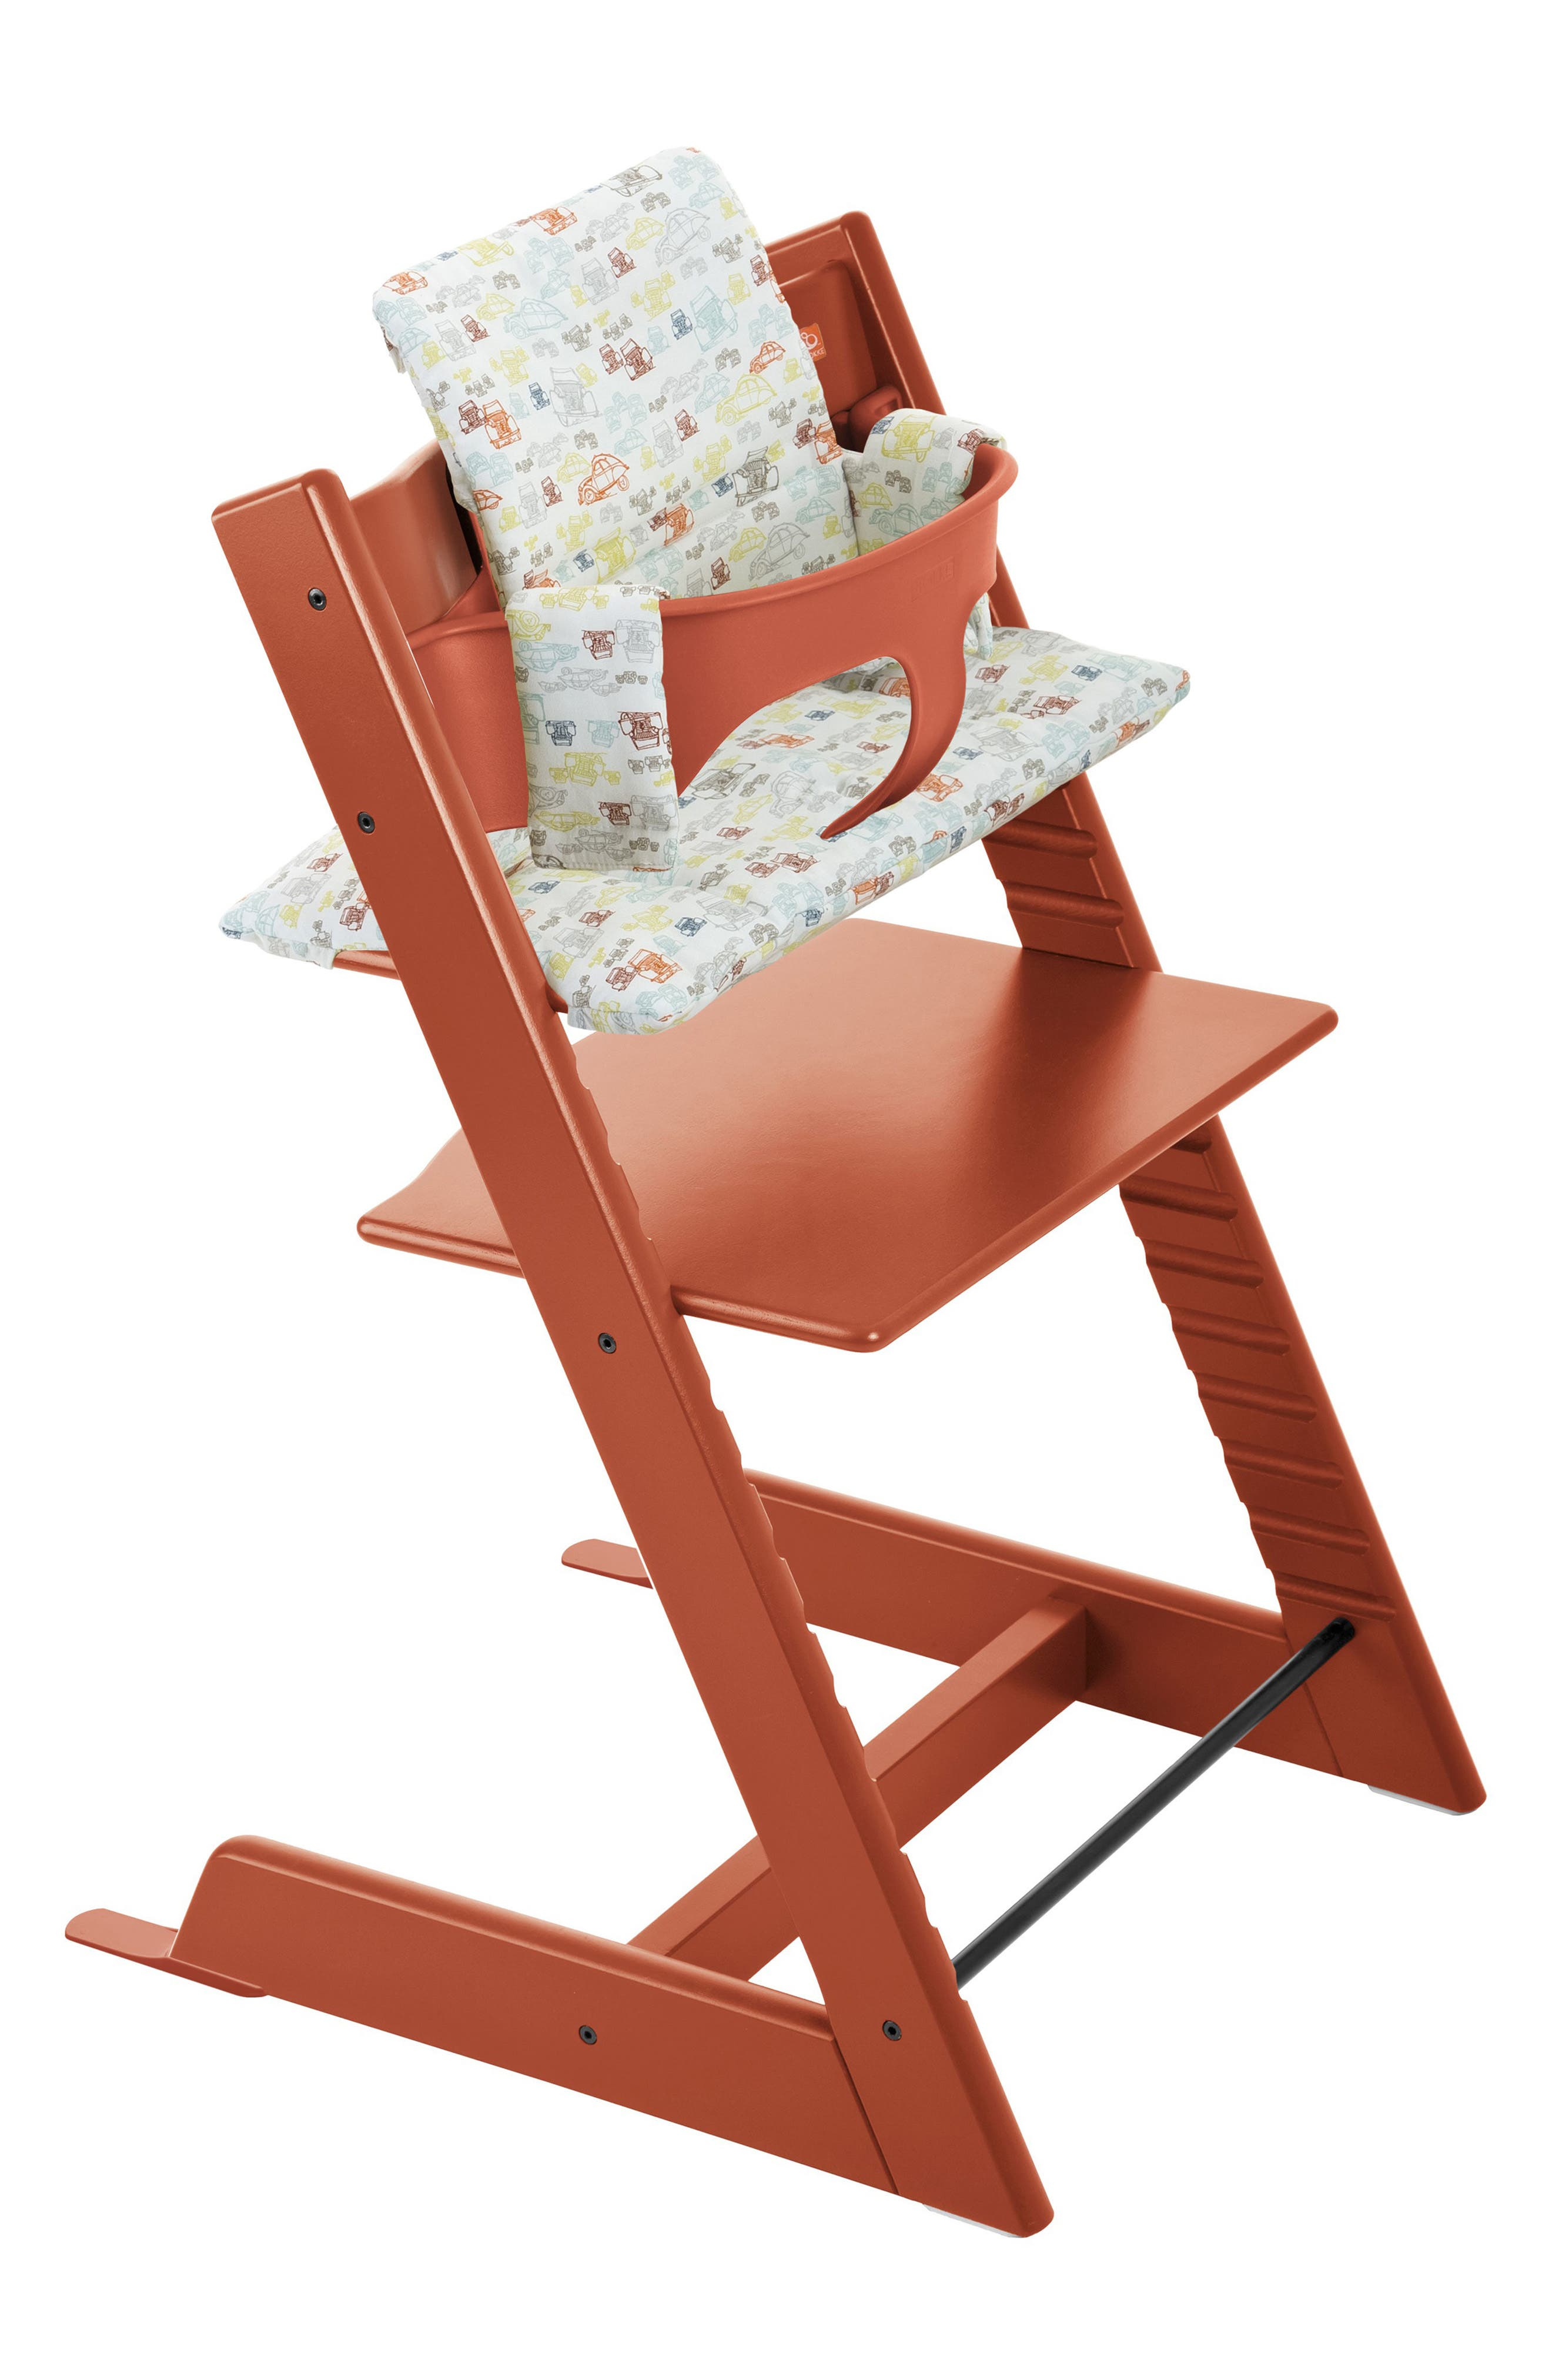 Alternate Image 1 Selected - Stokke Tripp Trapp® High Chair, Baby Set, Cushion & Tray Set (Nordstrom Exclusive)